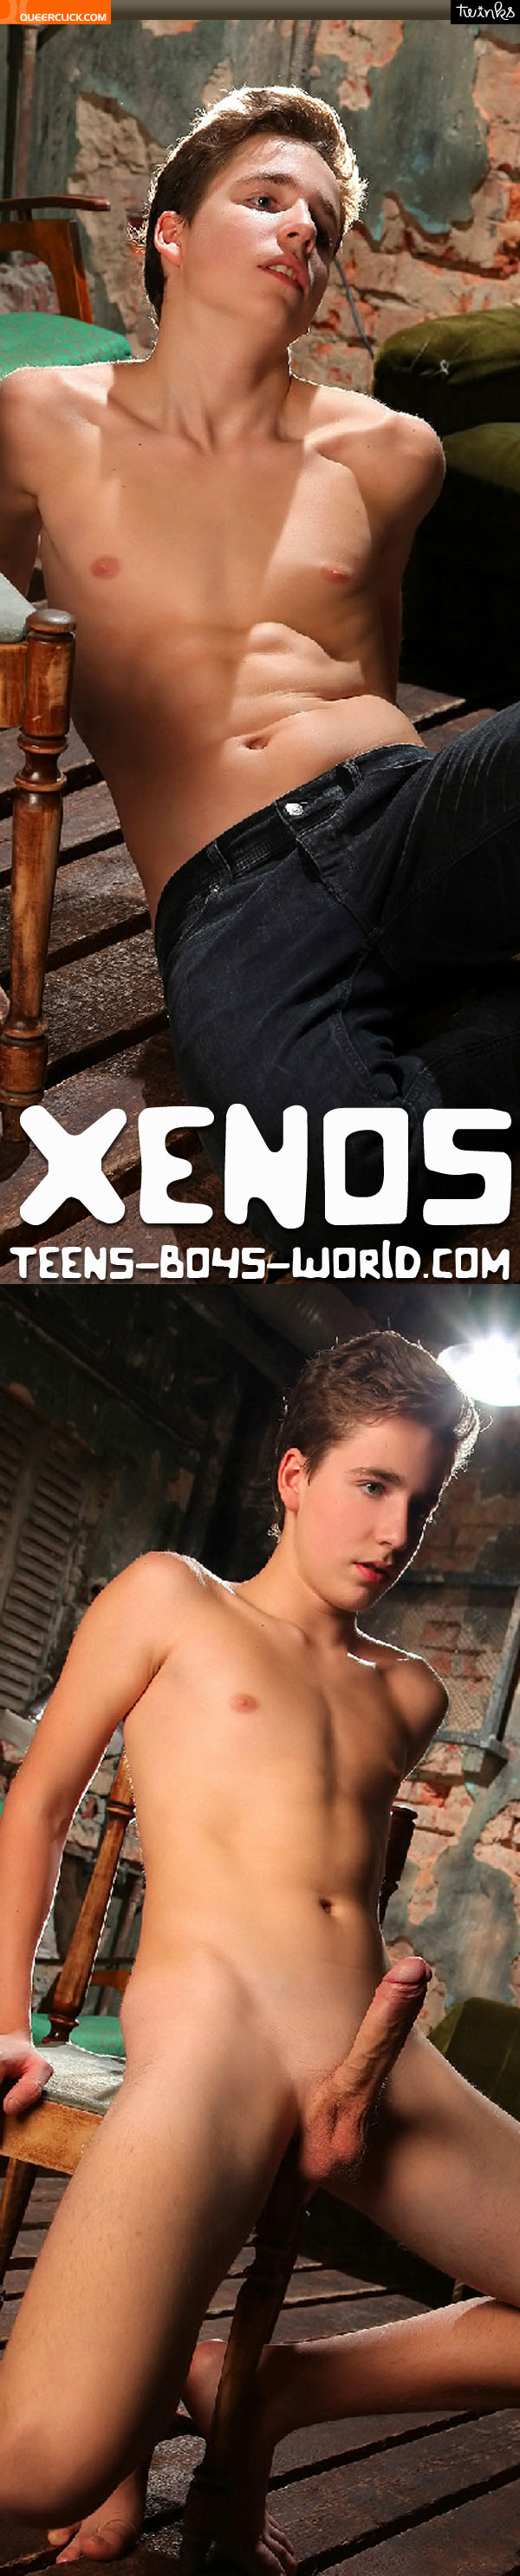 teens boys world xenos